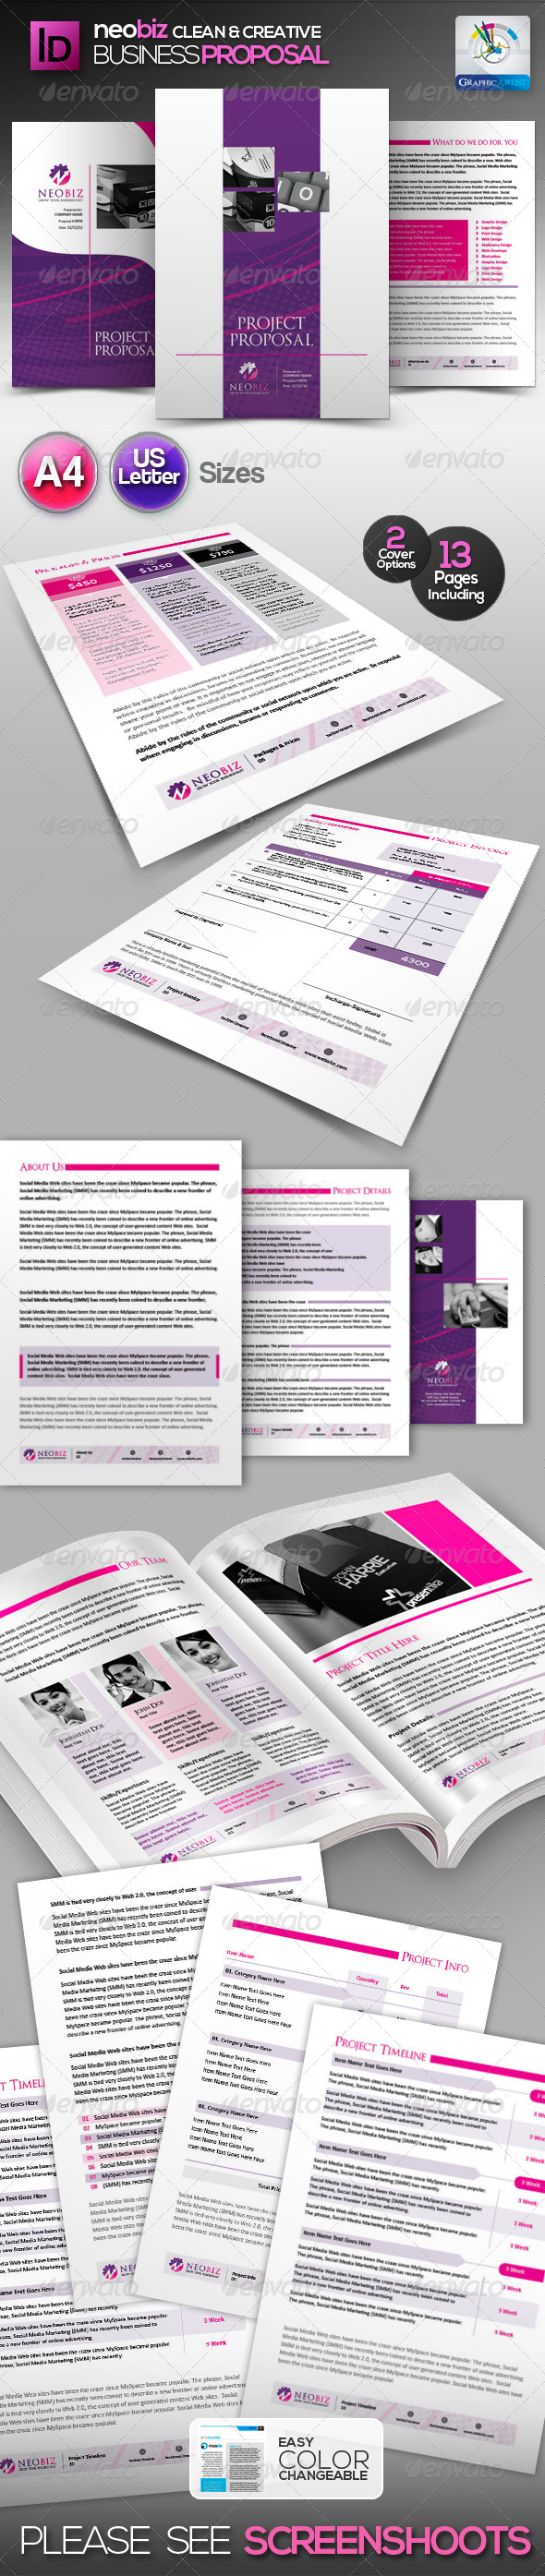 NeoBiz Clean Generic Proposal - Proposals & Invoices Stationery